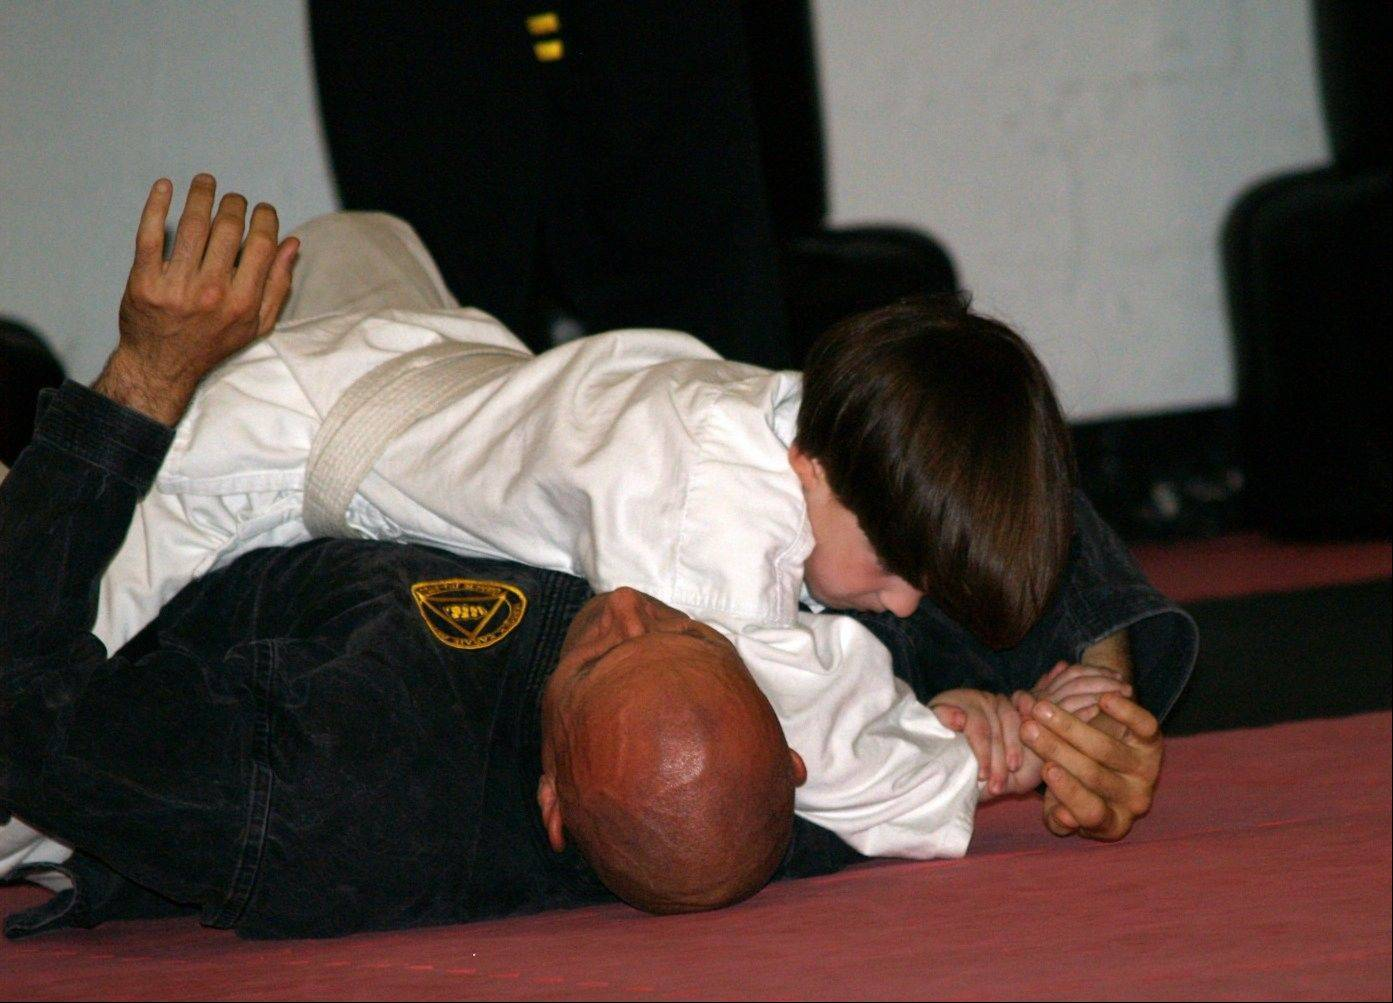 This June 2010 photo provided by Lisa Suhay shows her son Quin Suhay, now 8, tackling Bill Odom, owner of Norfolk Karate Academy in Norfolk, Va., as part of a bullyproofing class that combines jujitsu _ defensive moves only, no punching or kicking _ with verbal strategies. Other types of bullyproofing programs, including guides for parents and regular classroom curricula, seek to make kids less vulnerable to being picked on by teaching them how to deal with teasing and how to make friends.